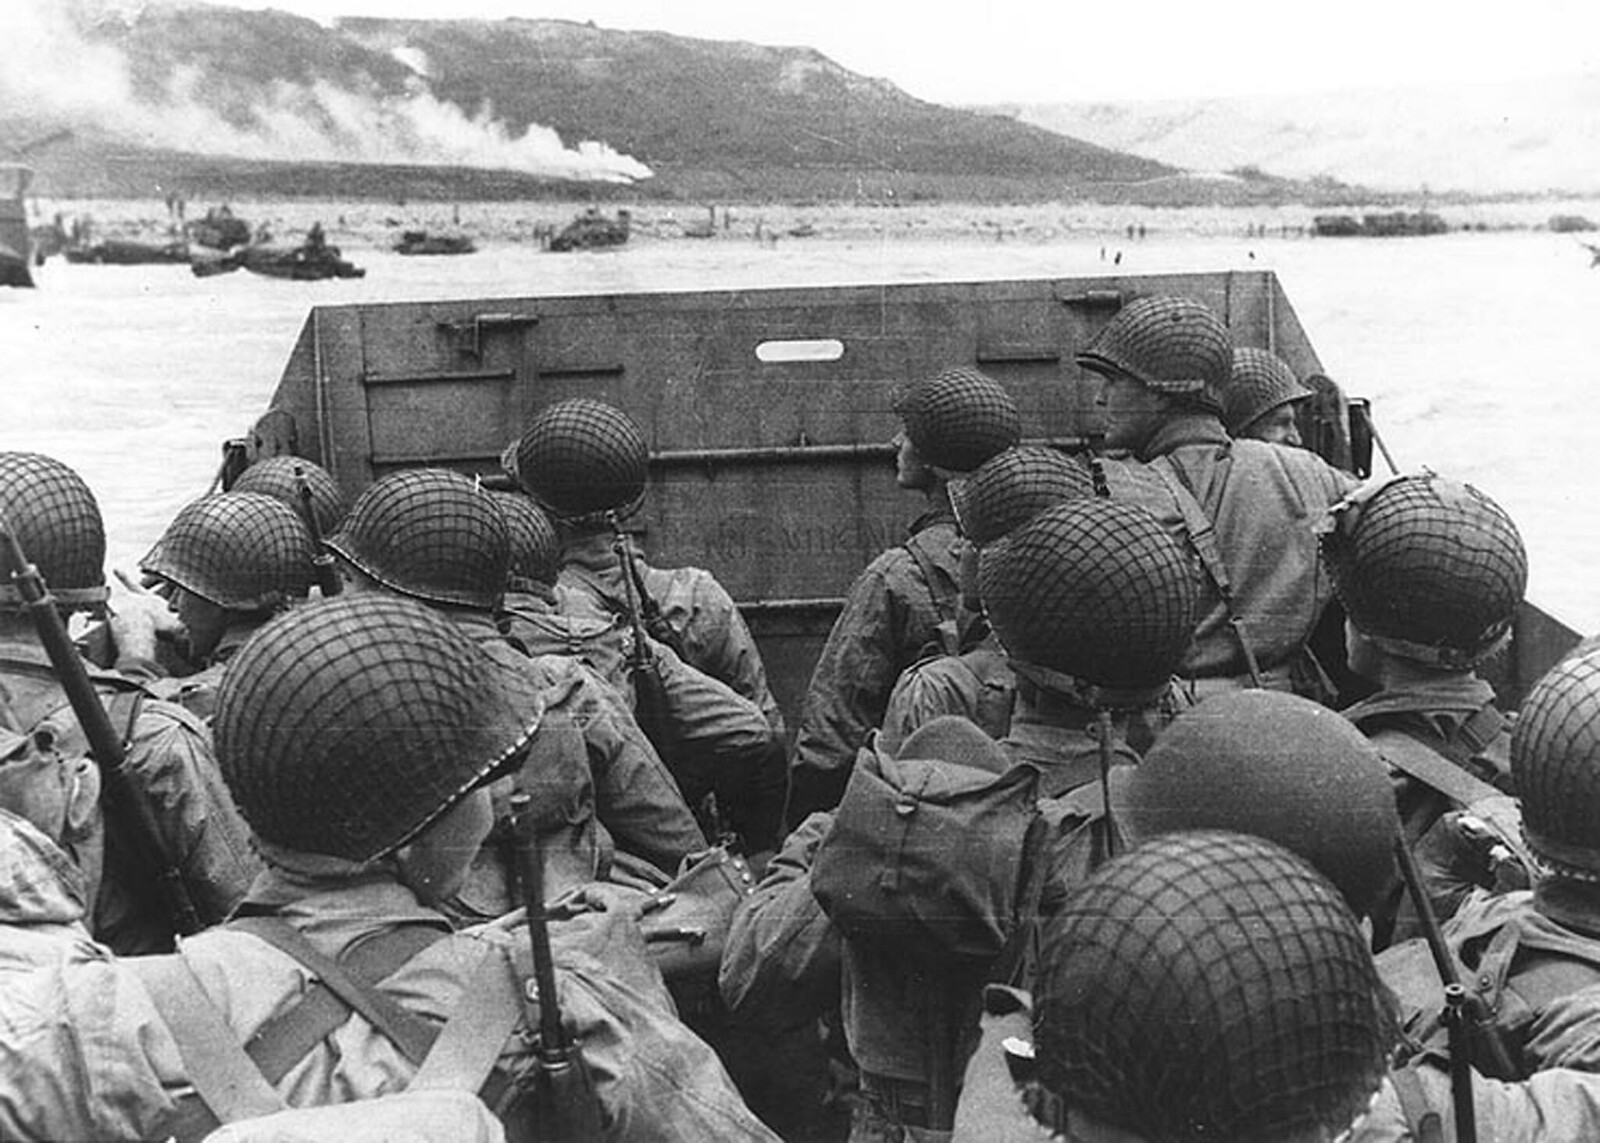 Troops in an LCVP landing craft approach Omaha Beach on D-Day, June 6, 1944